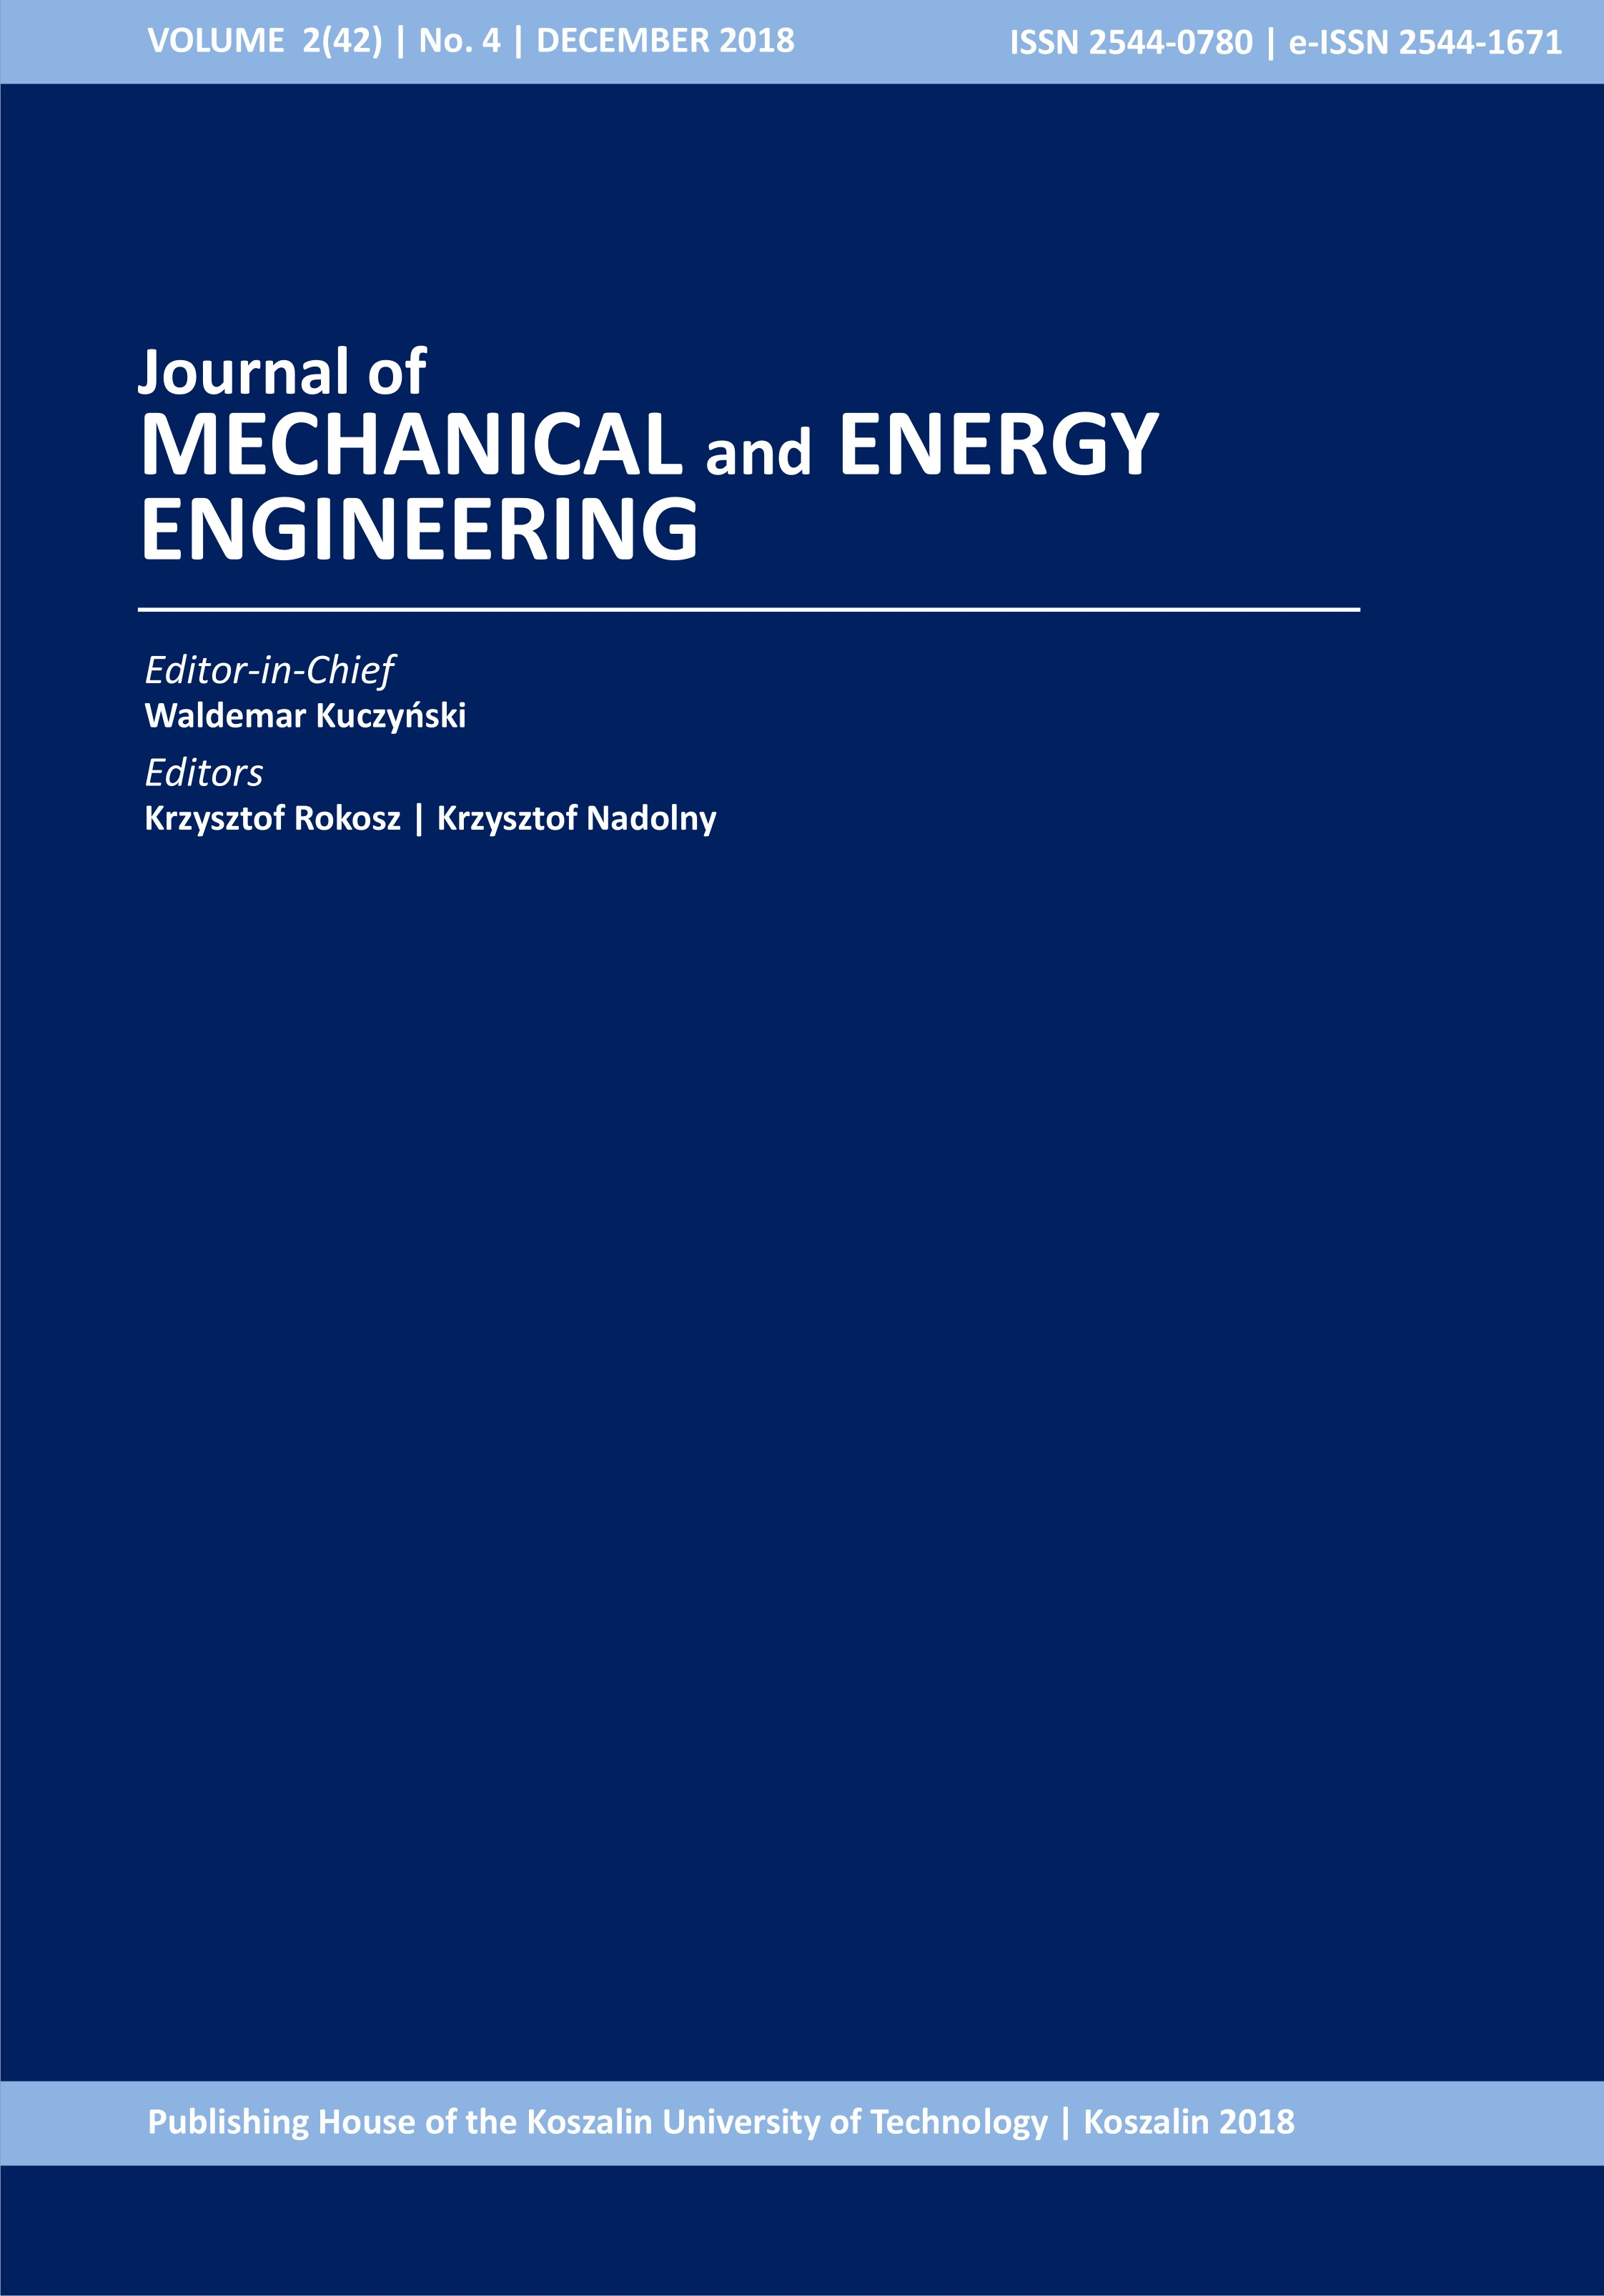 JMME 2(4) 2018 front cover